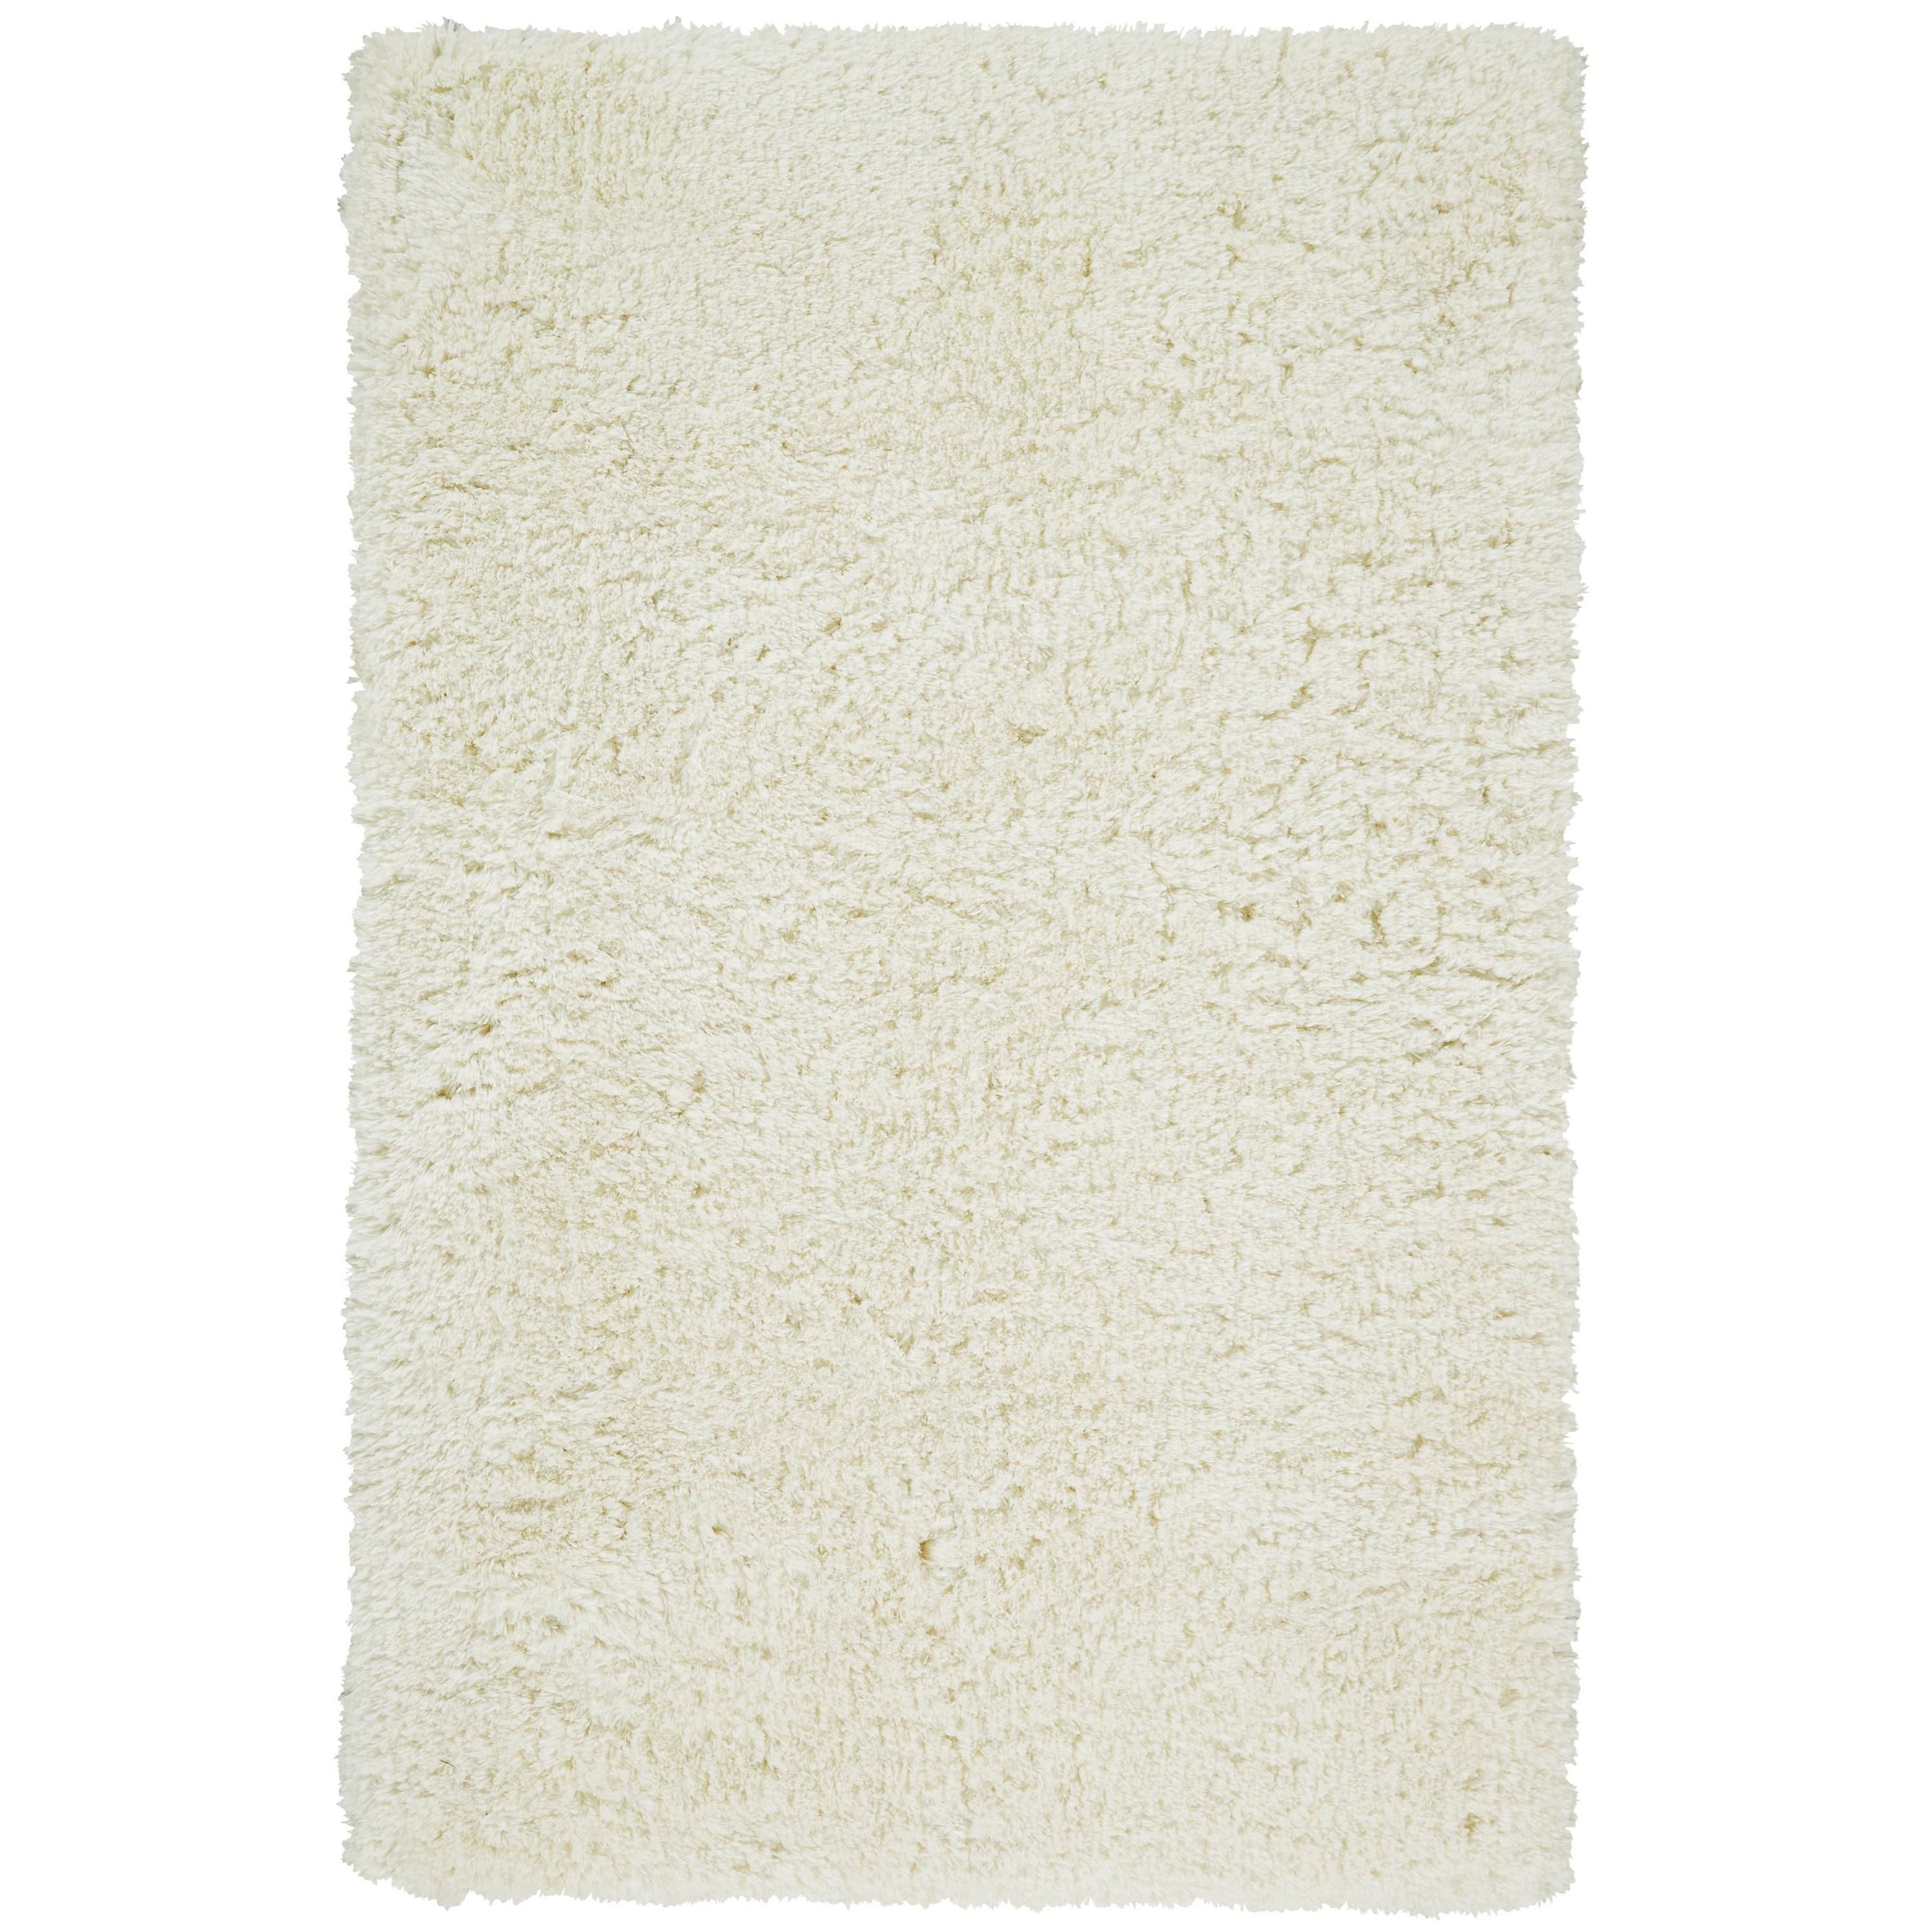 Beckley Pearl 5' x 8' Area Rug by Feizy Rugs at Sprintz Furniture